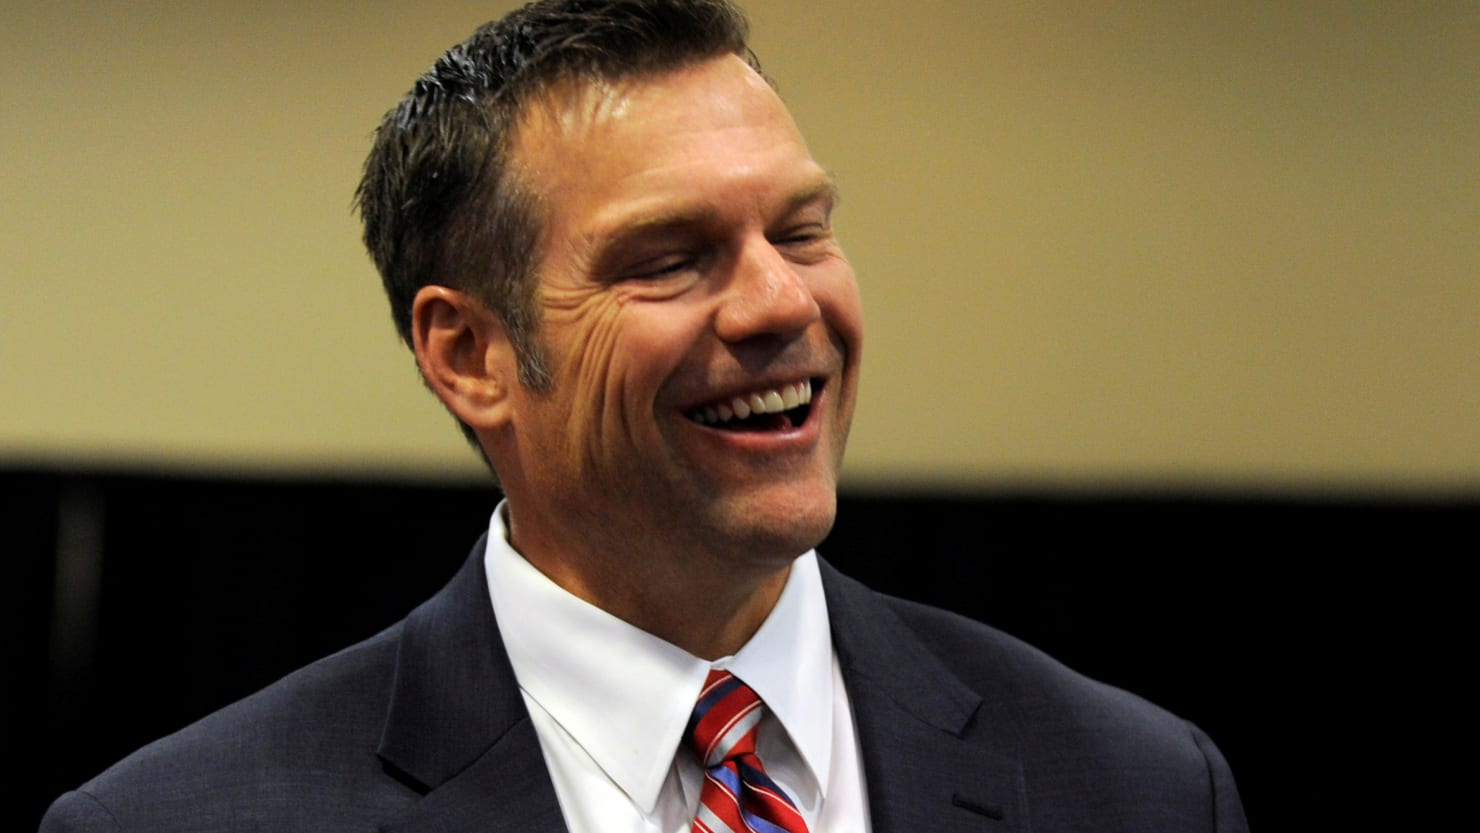 Kris Kobach Gave List of Conditions to Accept 'Immigration Czar' Role: NYT